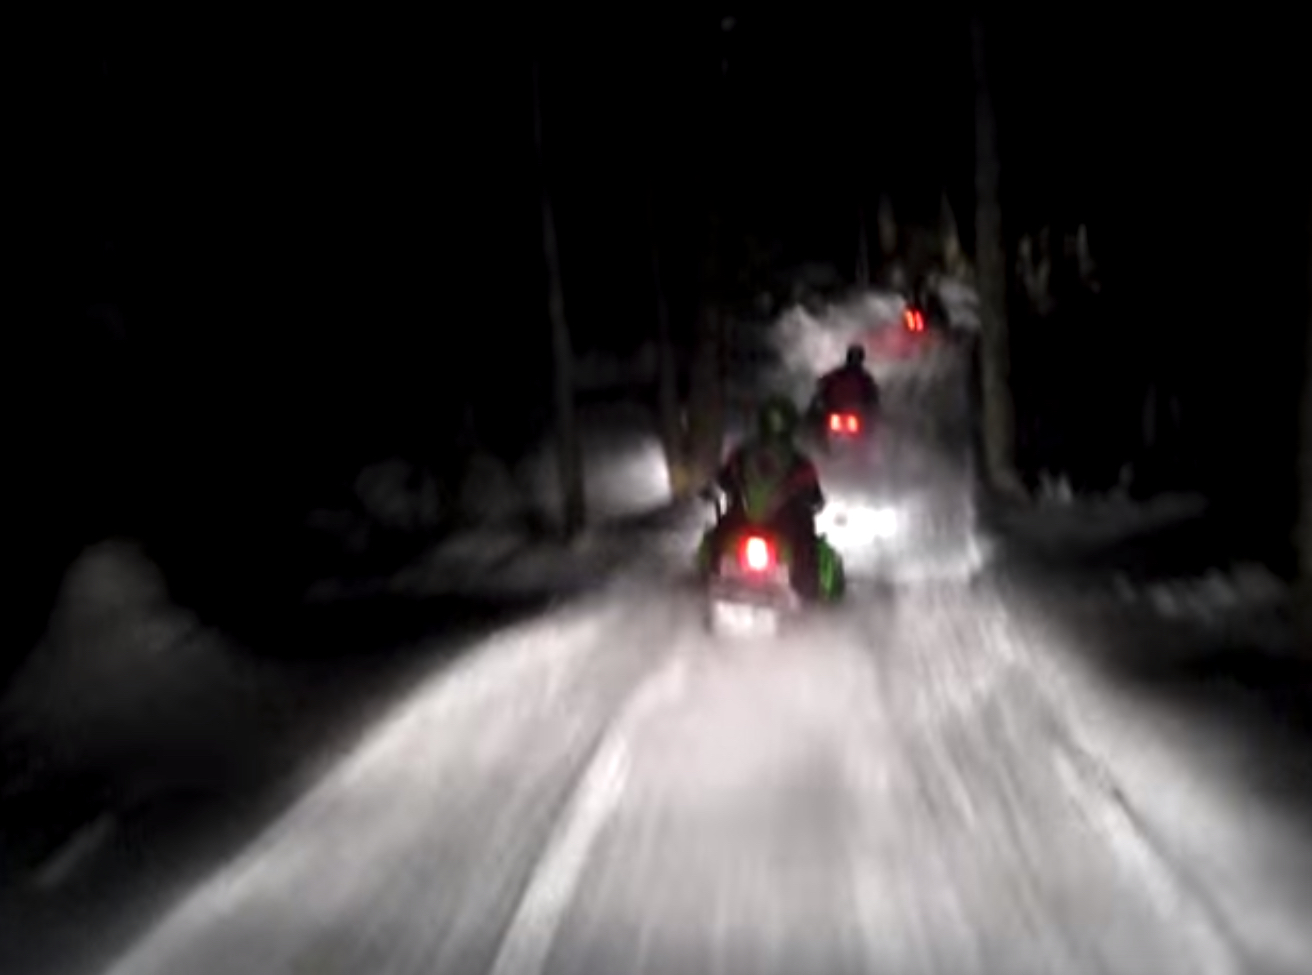 snowmobiles at night, journal of wild culture